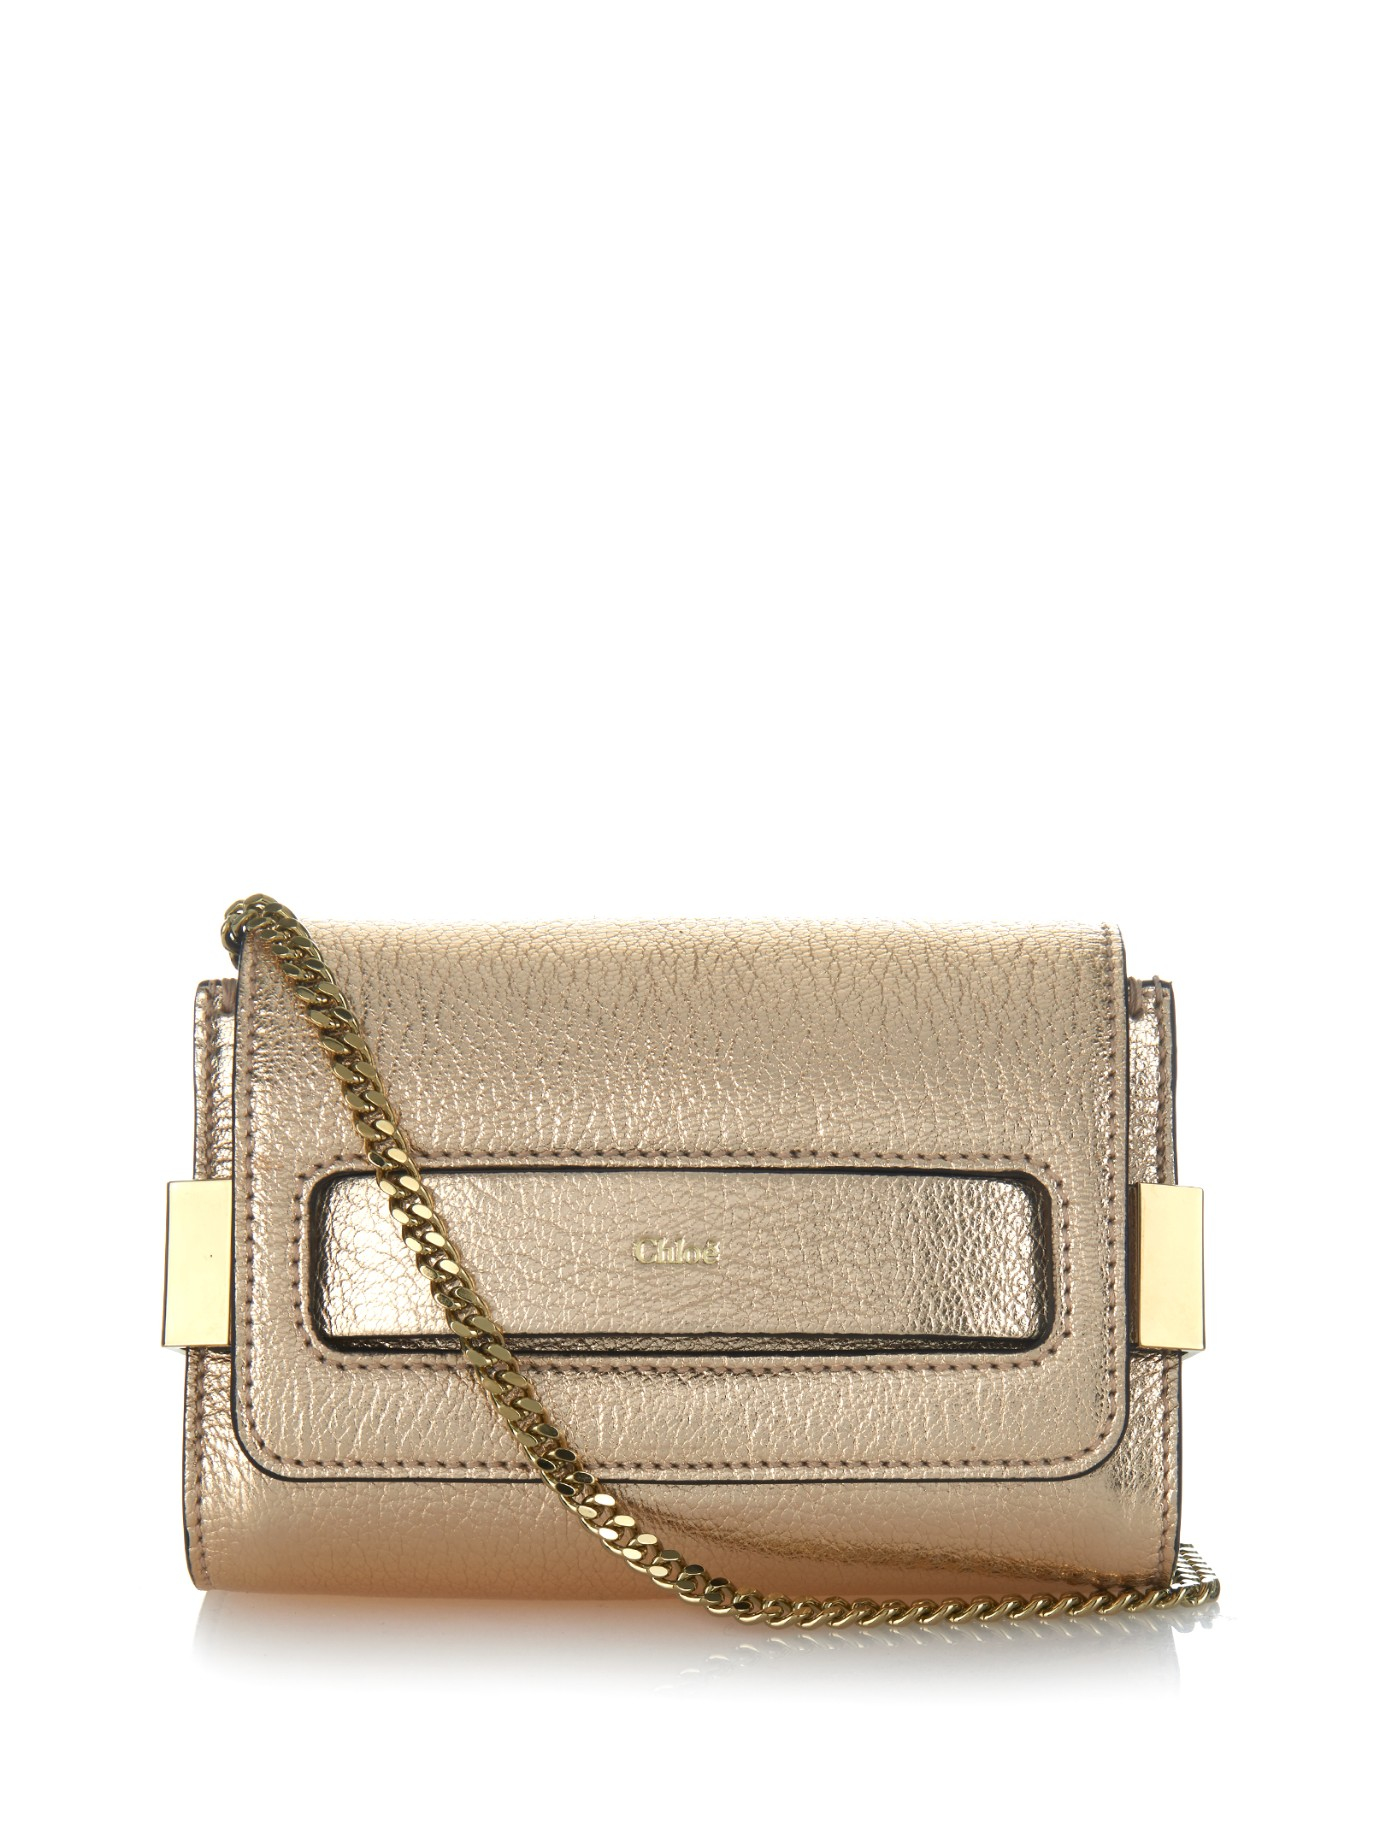 Chlo�� Elle Mini Leather Clutch in Gold | Lyst